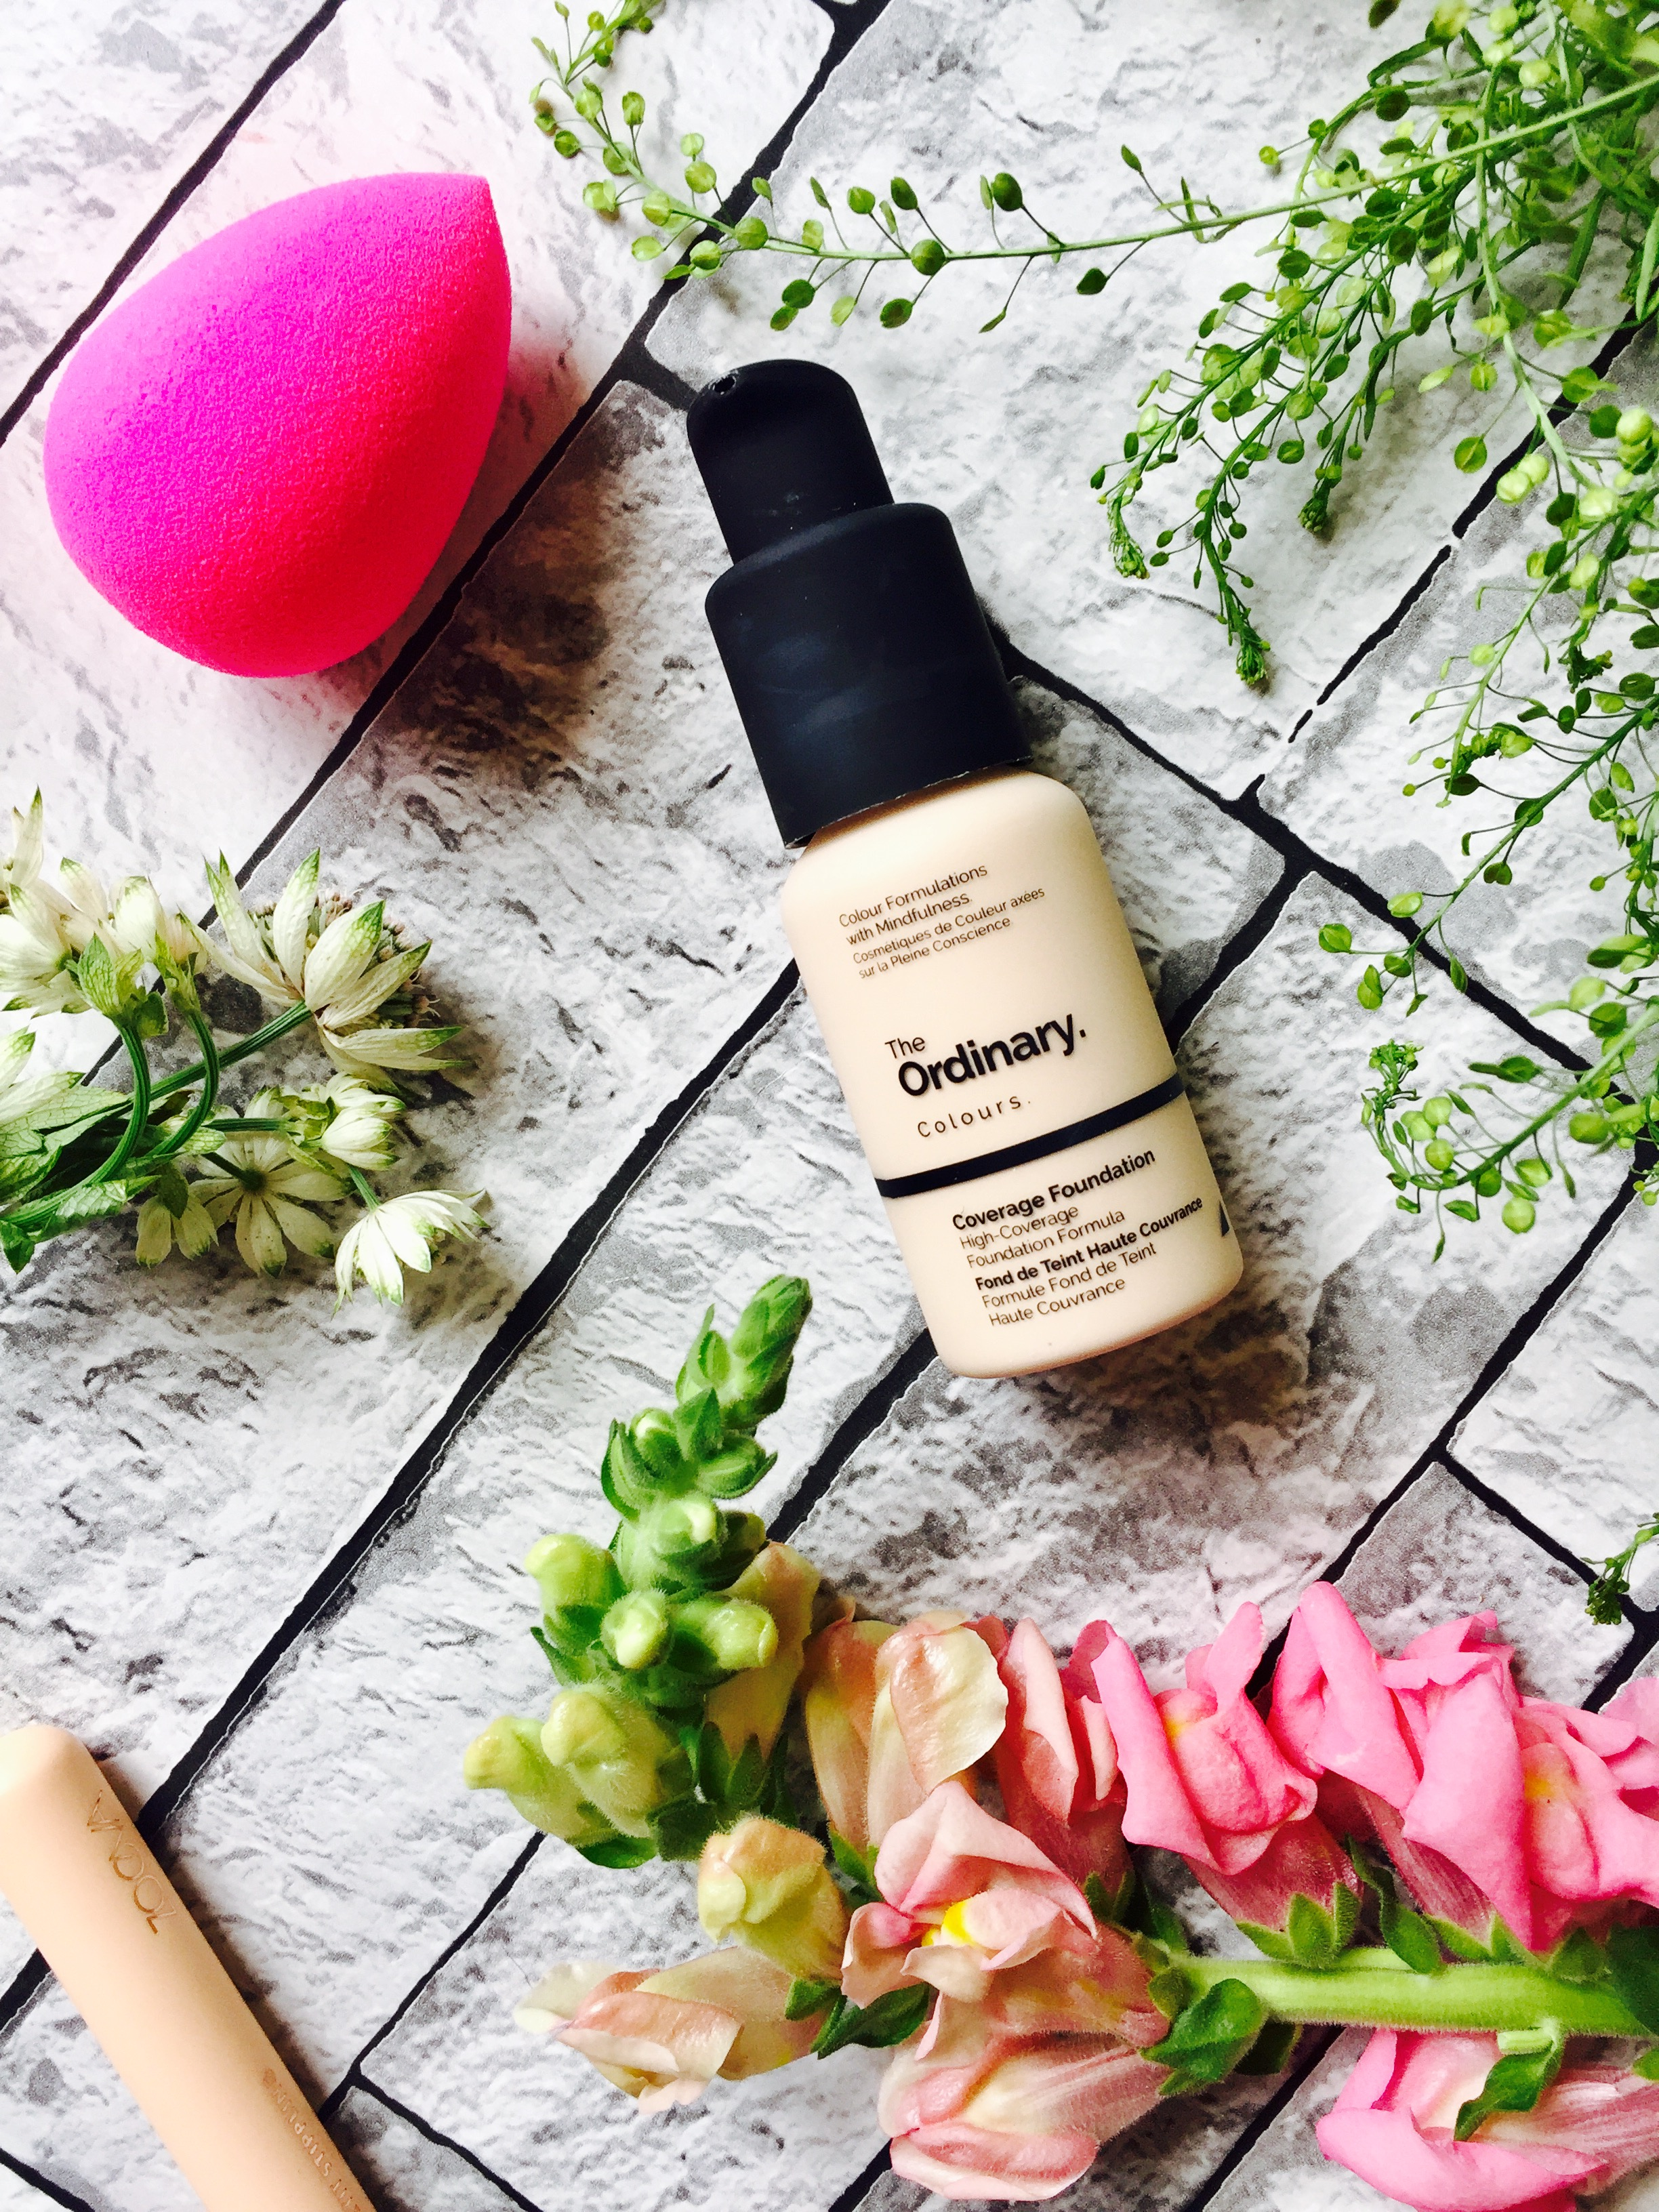 The Ordinary Serum Coverages foundation review pale skin 1.0P swatches